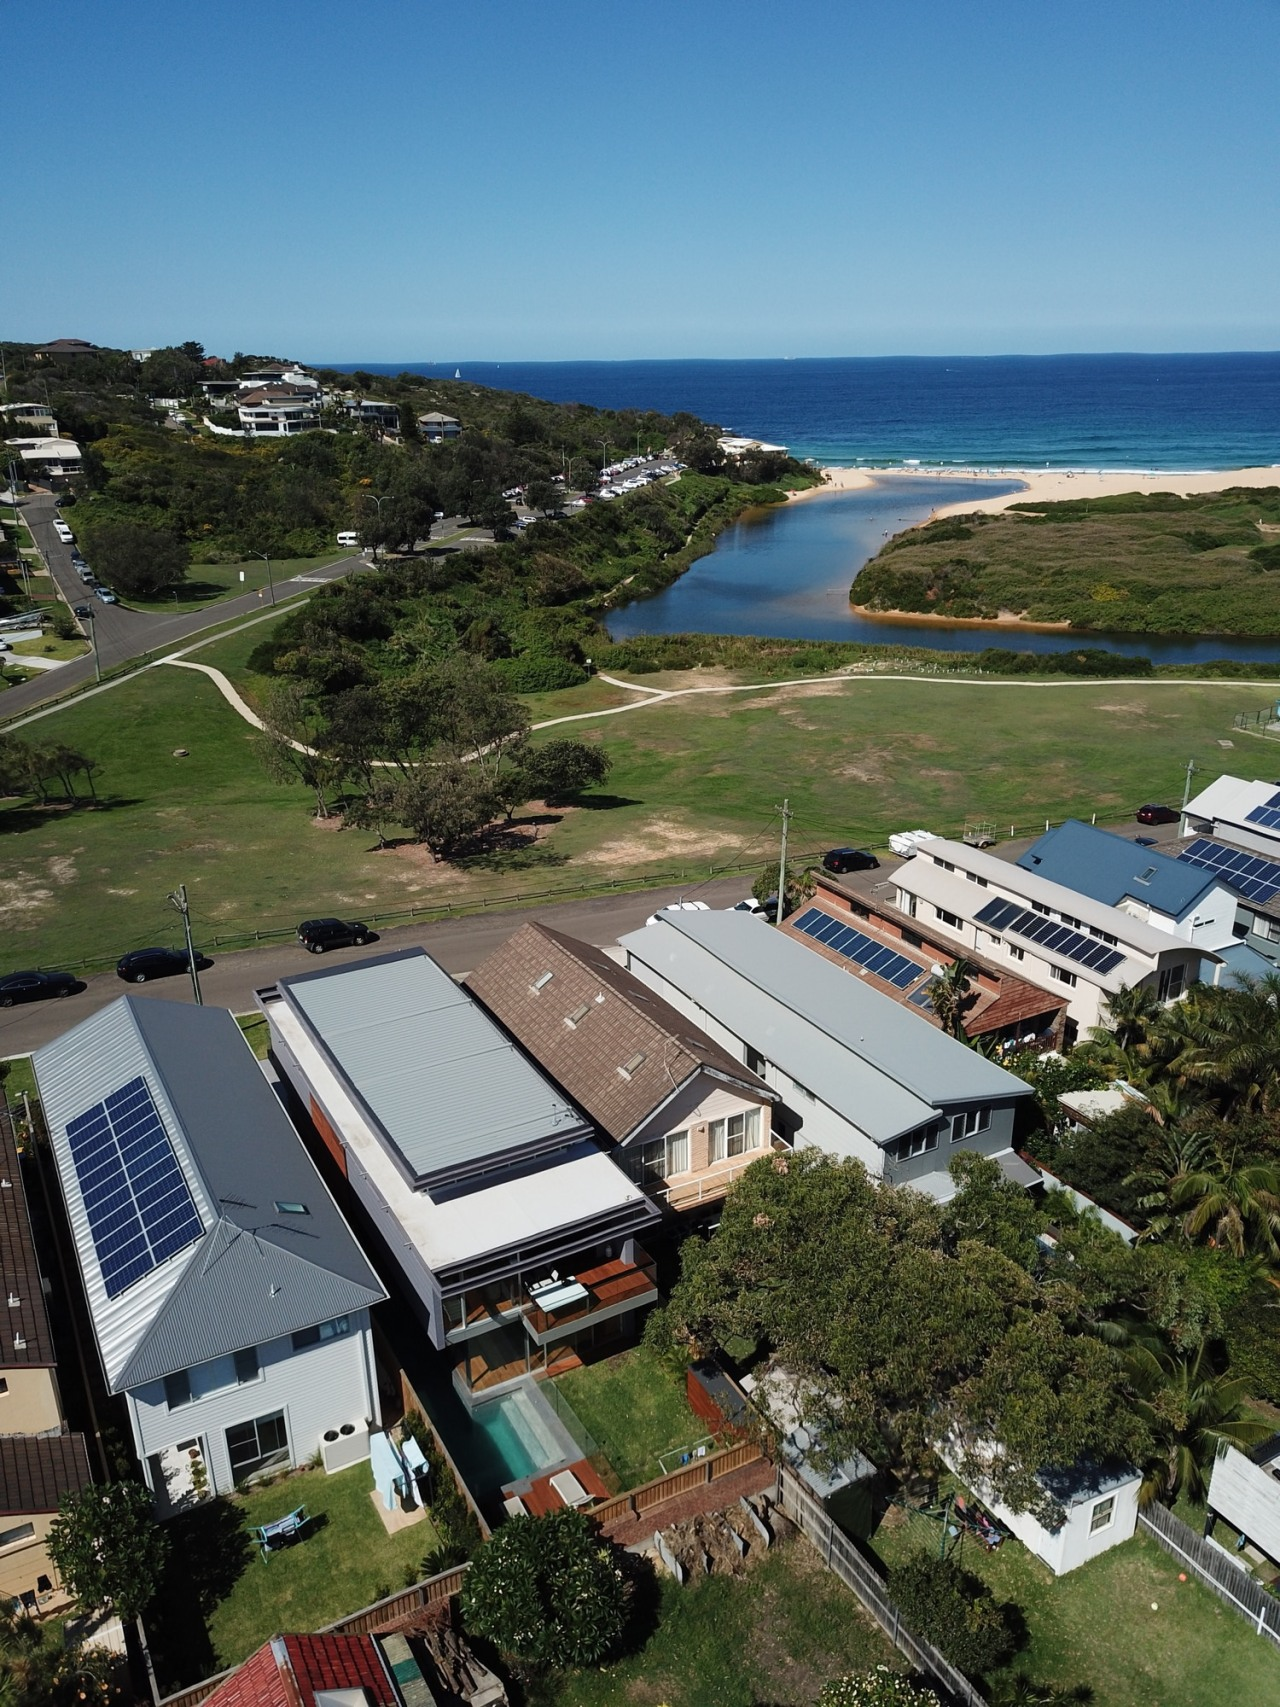 Looking out to see from the subdivision. aerial photography, bird's eye view, energy, home, house, photography, real estate, roof, sea, sky, water, brown